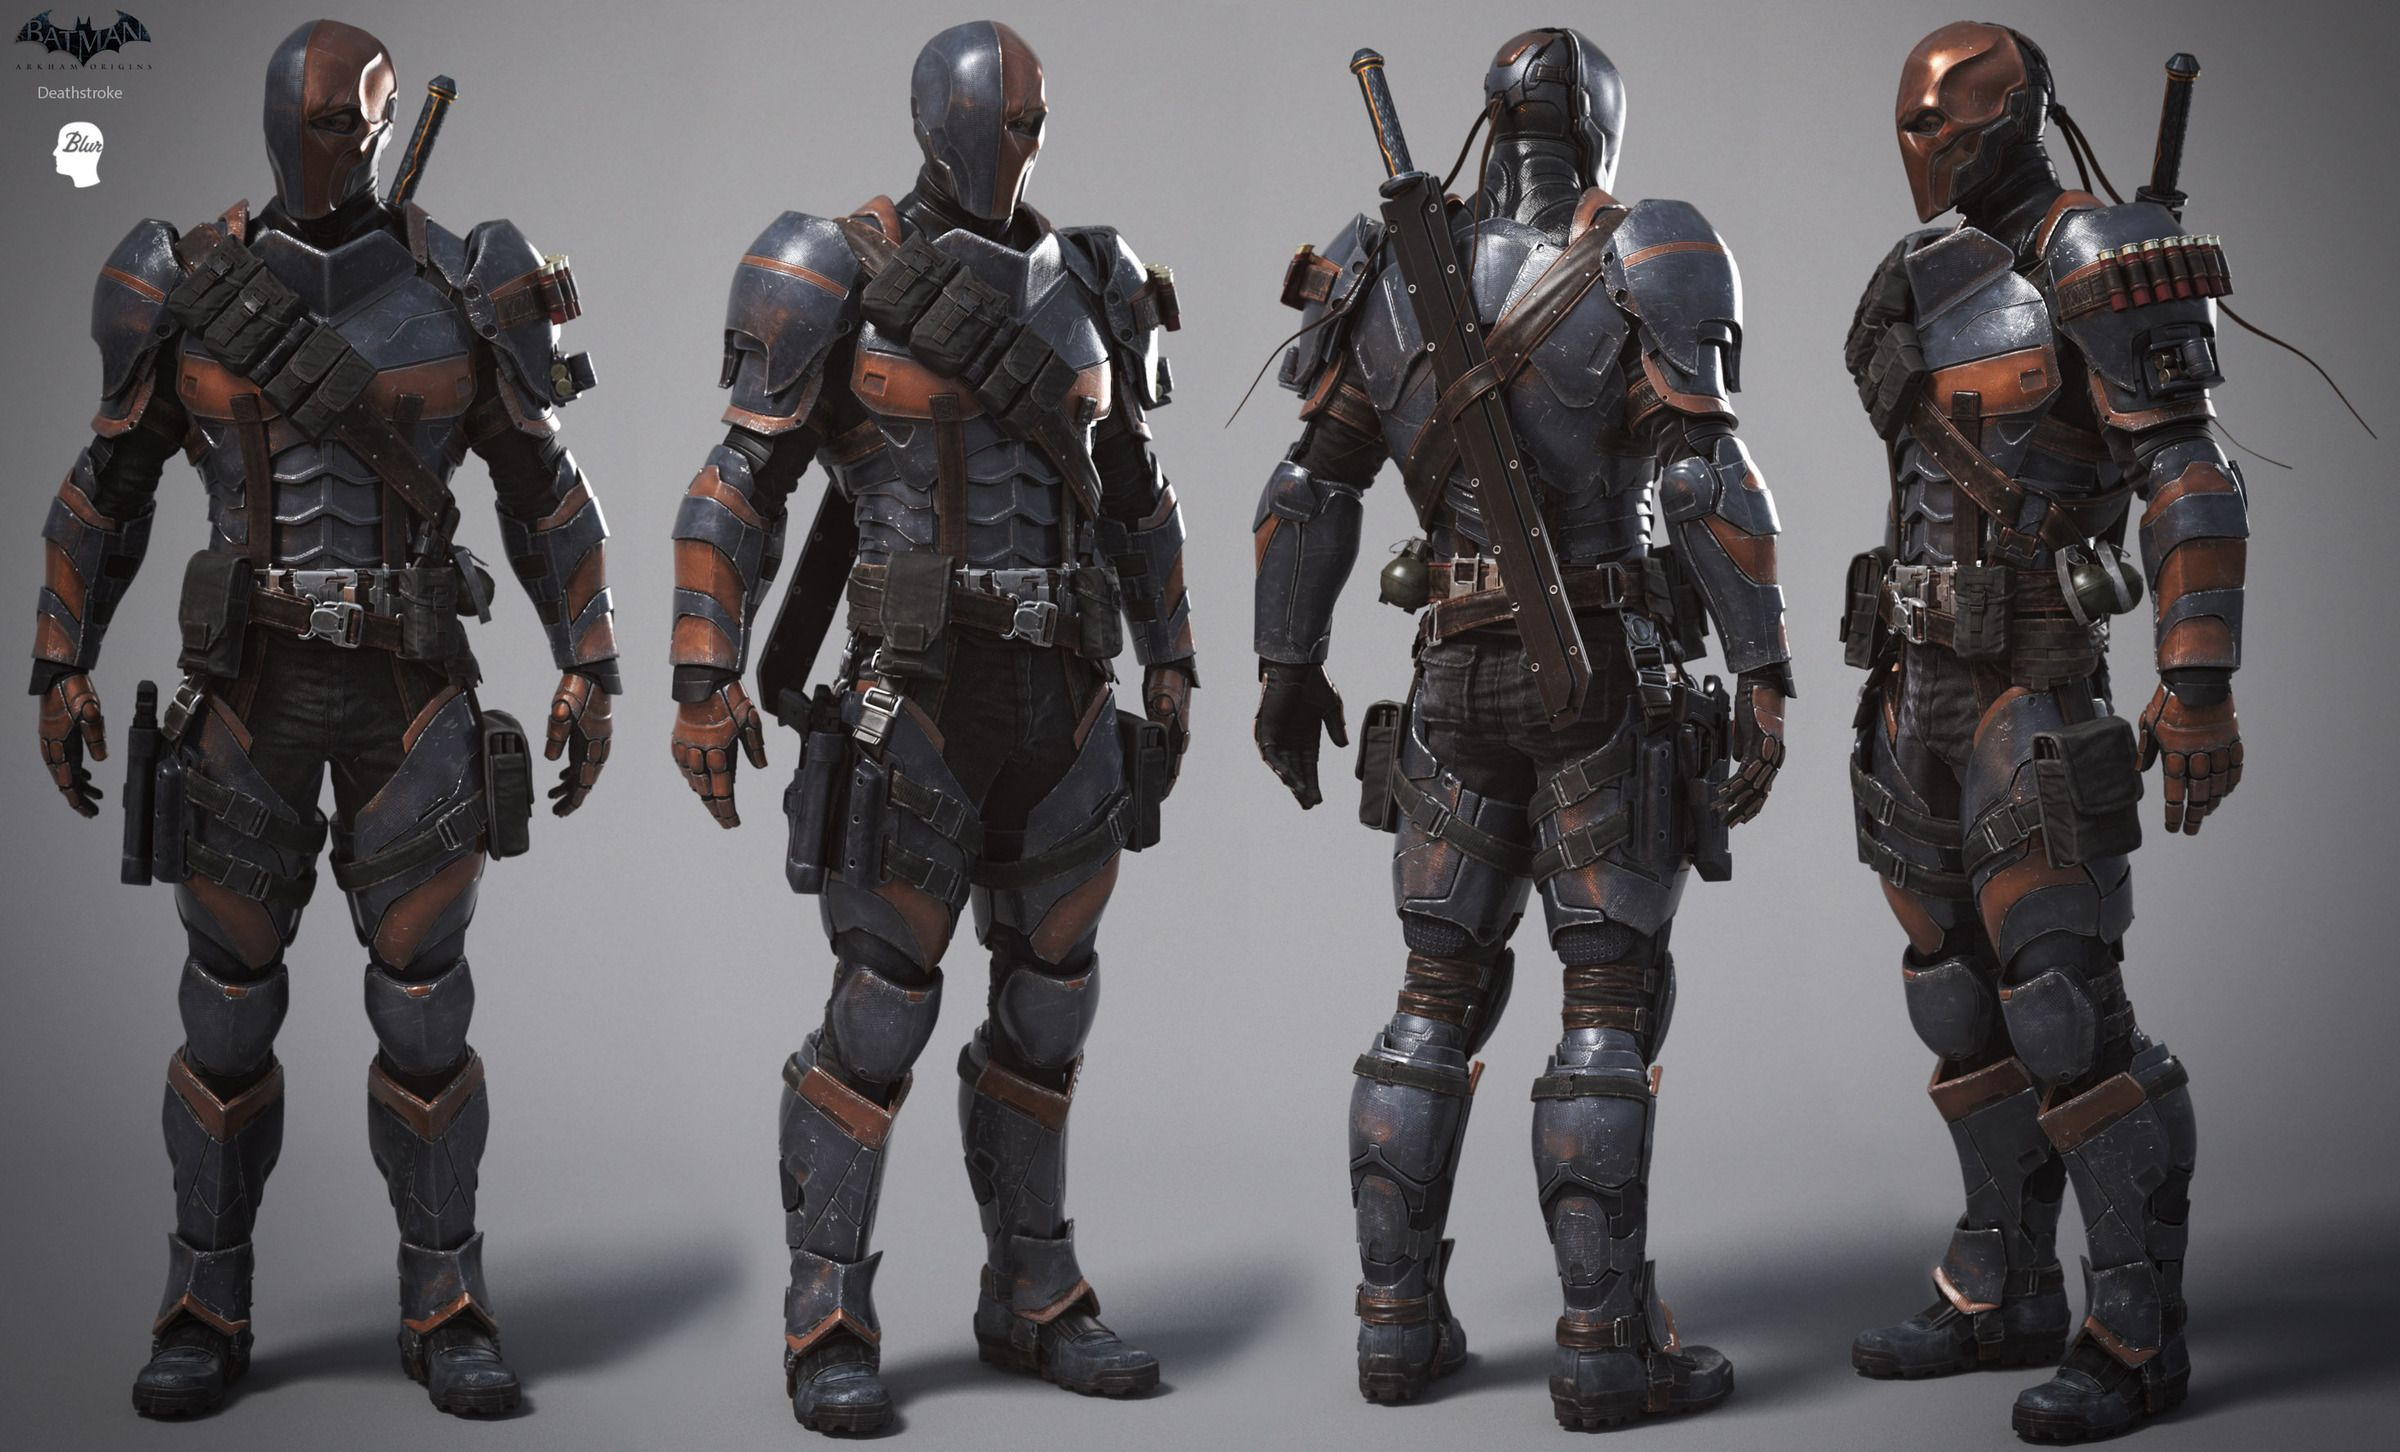 Deathstroke's Mask Beed46dc349b82b644d6d90a39bd0e2e